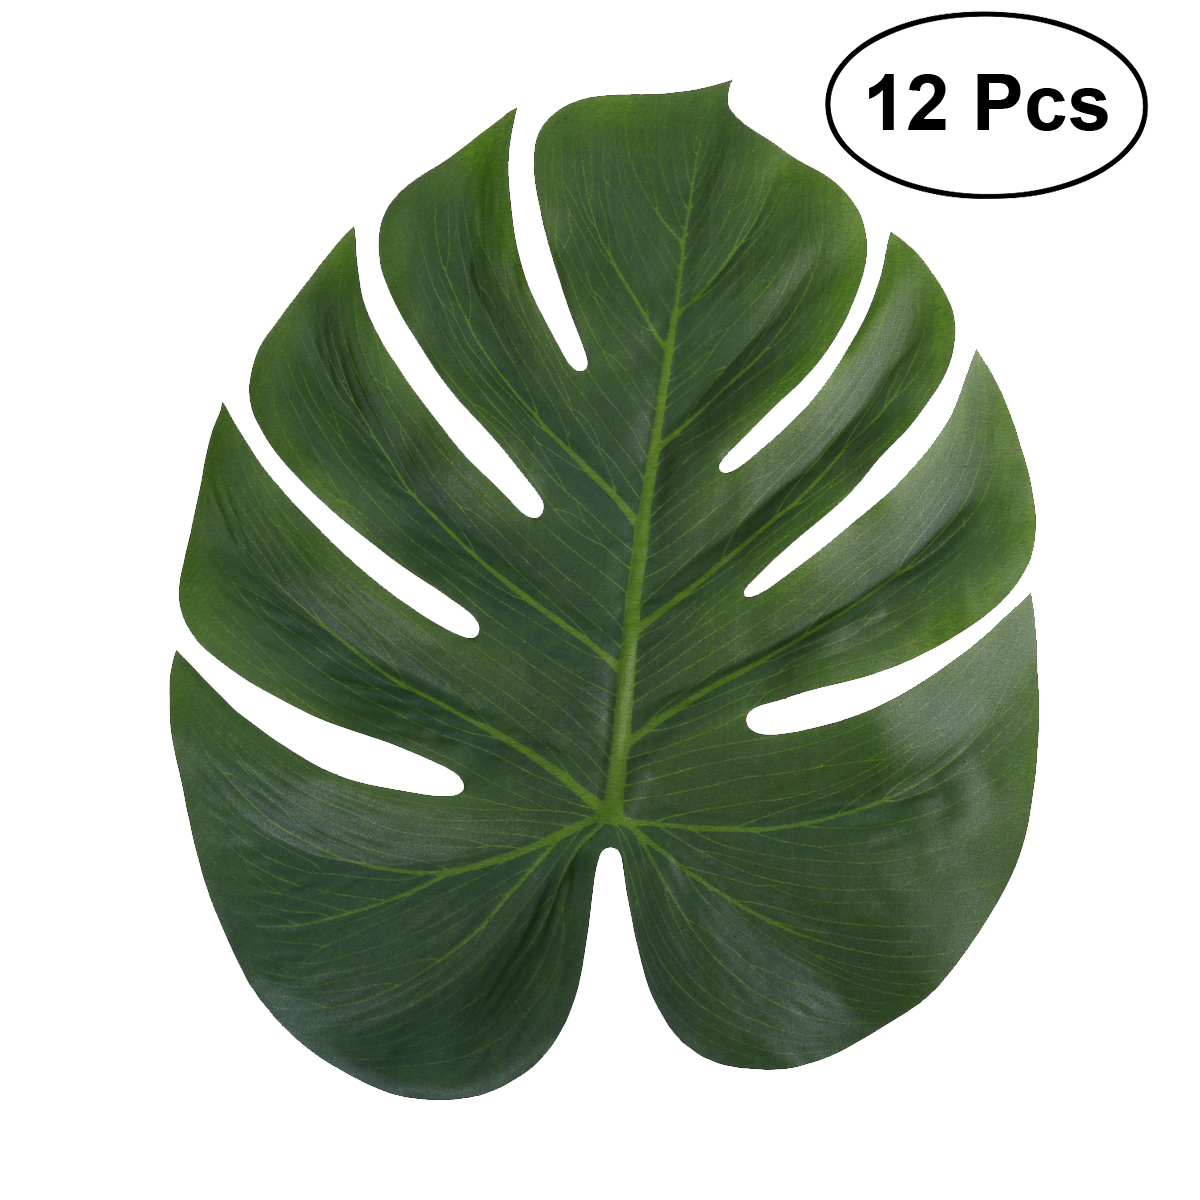 12pcs 35x29cm Artificial Tropical Palm Leaves Simulation Leaf for Hawaiian Luau Party Jungle Beach Theme Party Decorations